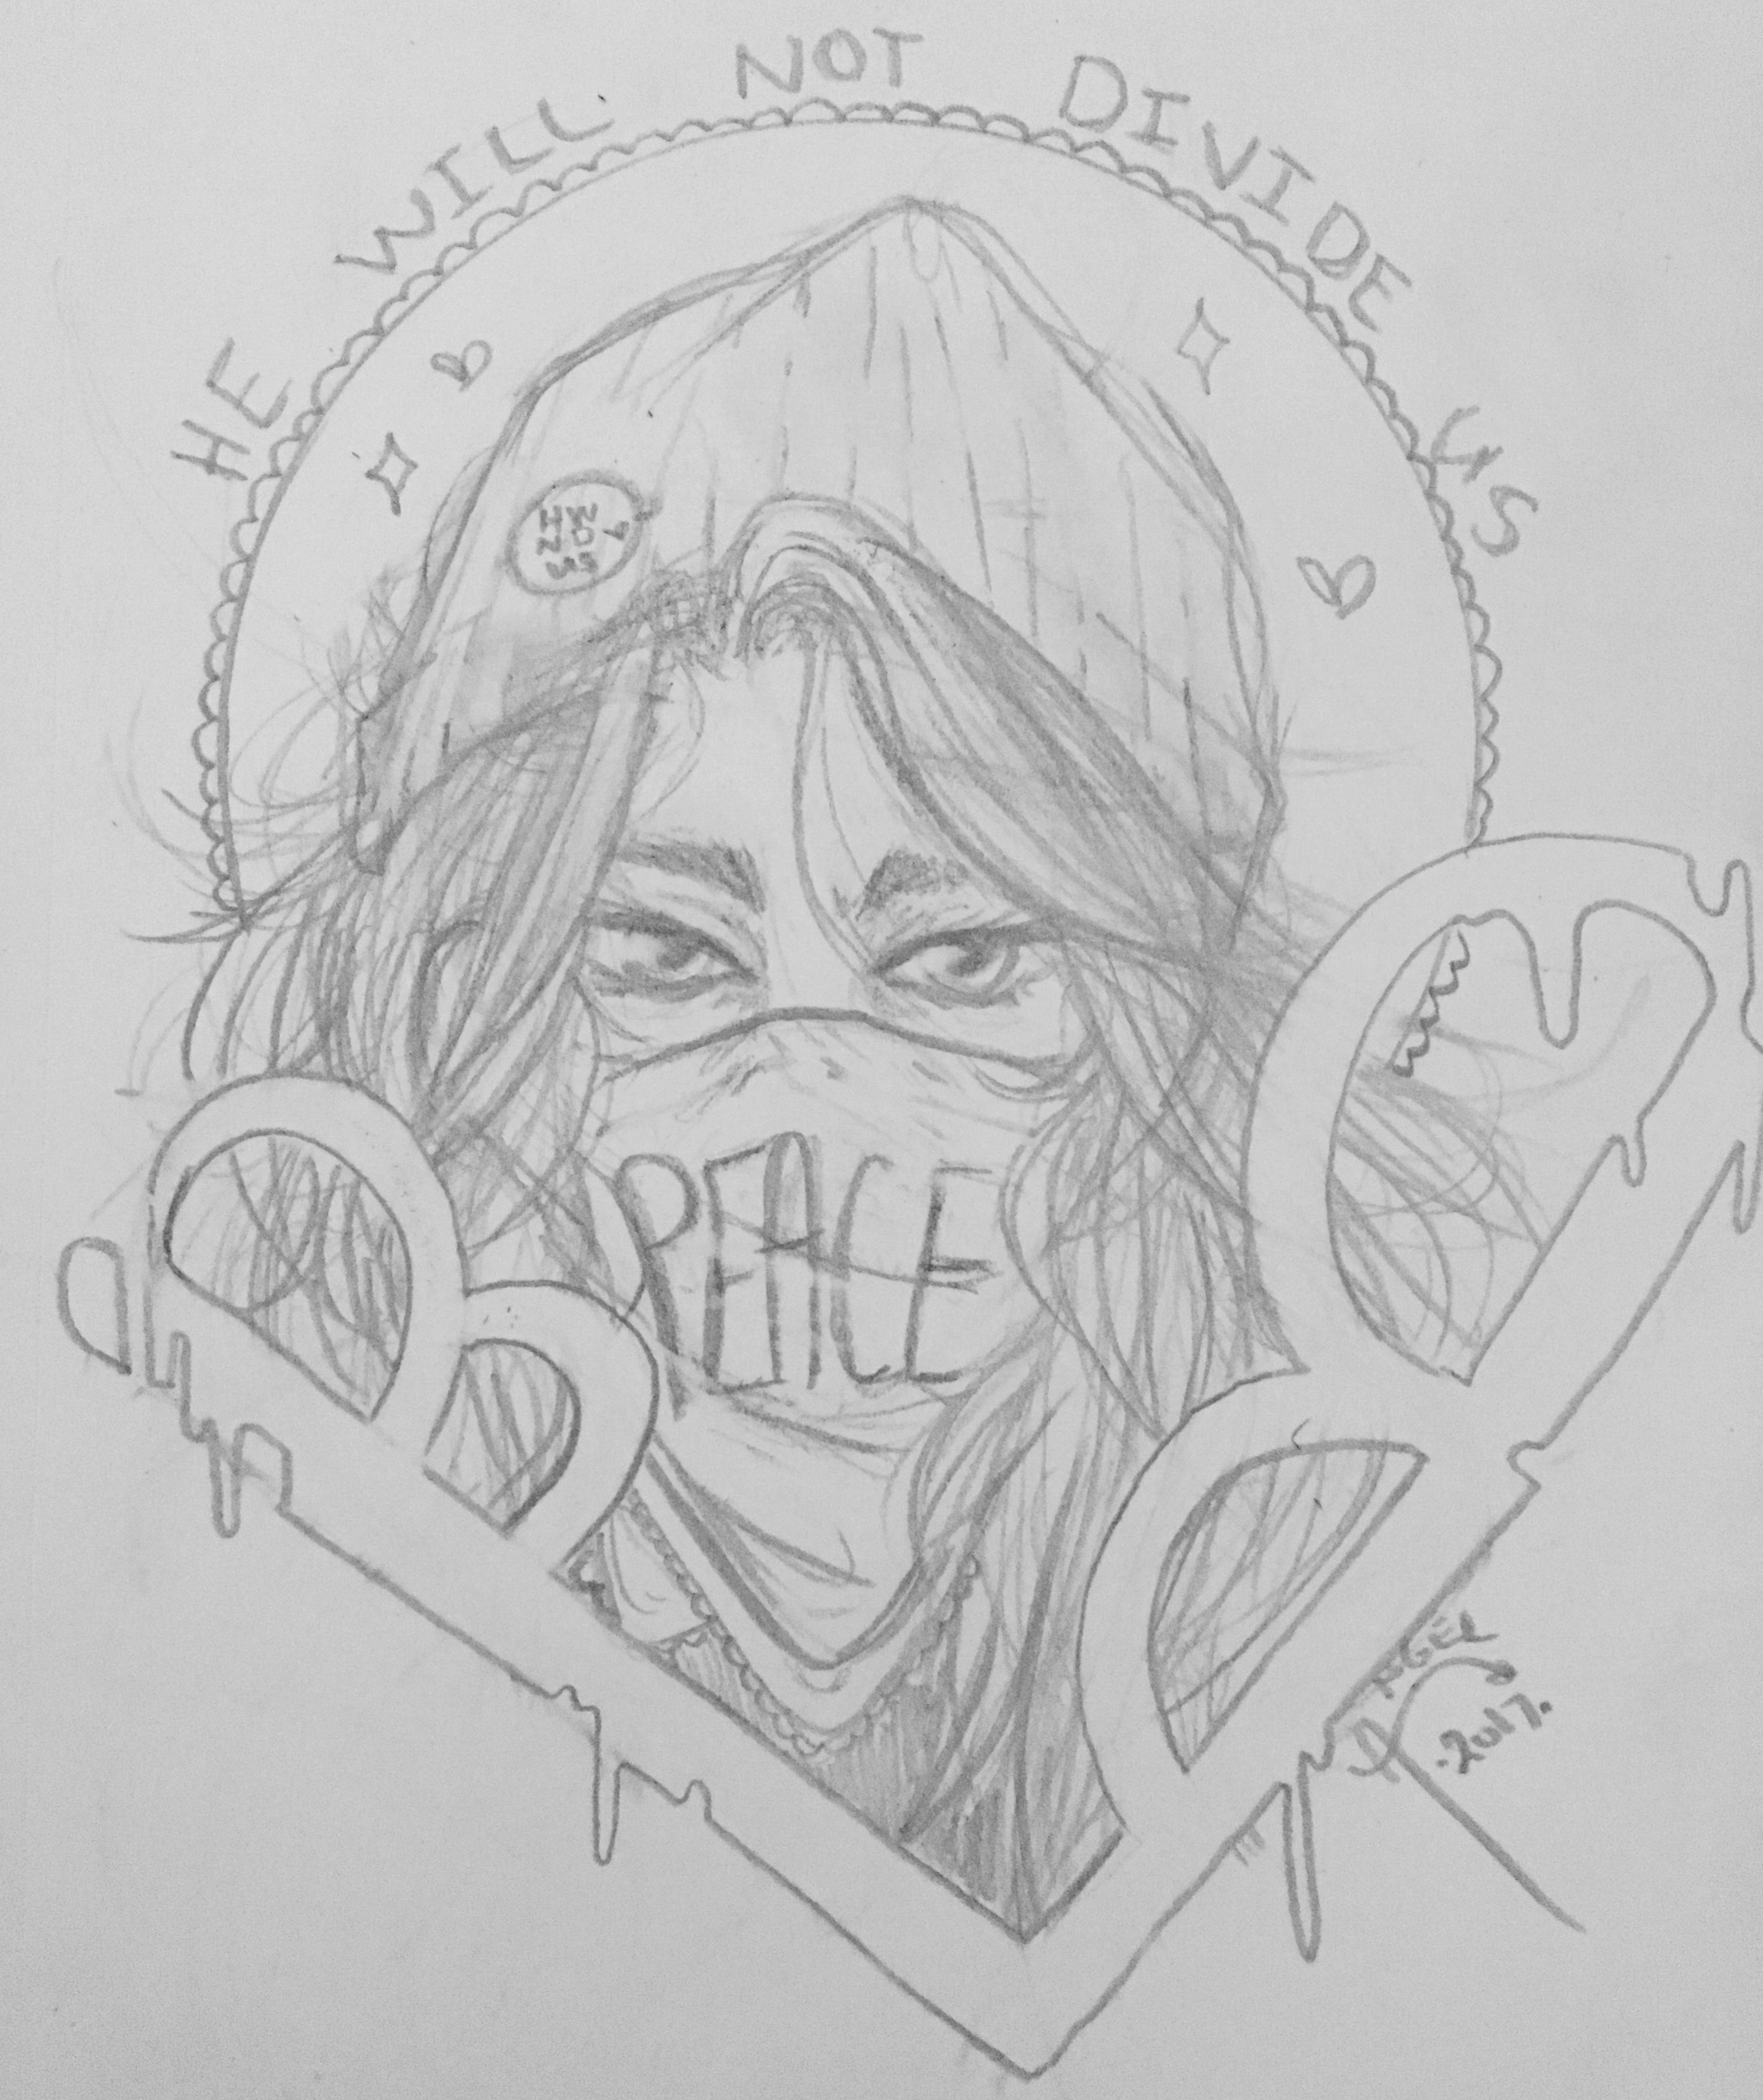 jpg freeuse download For all the protests. Drawing something meaningful